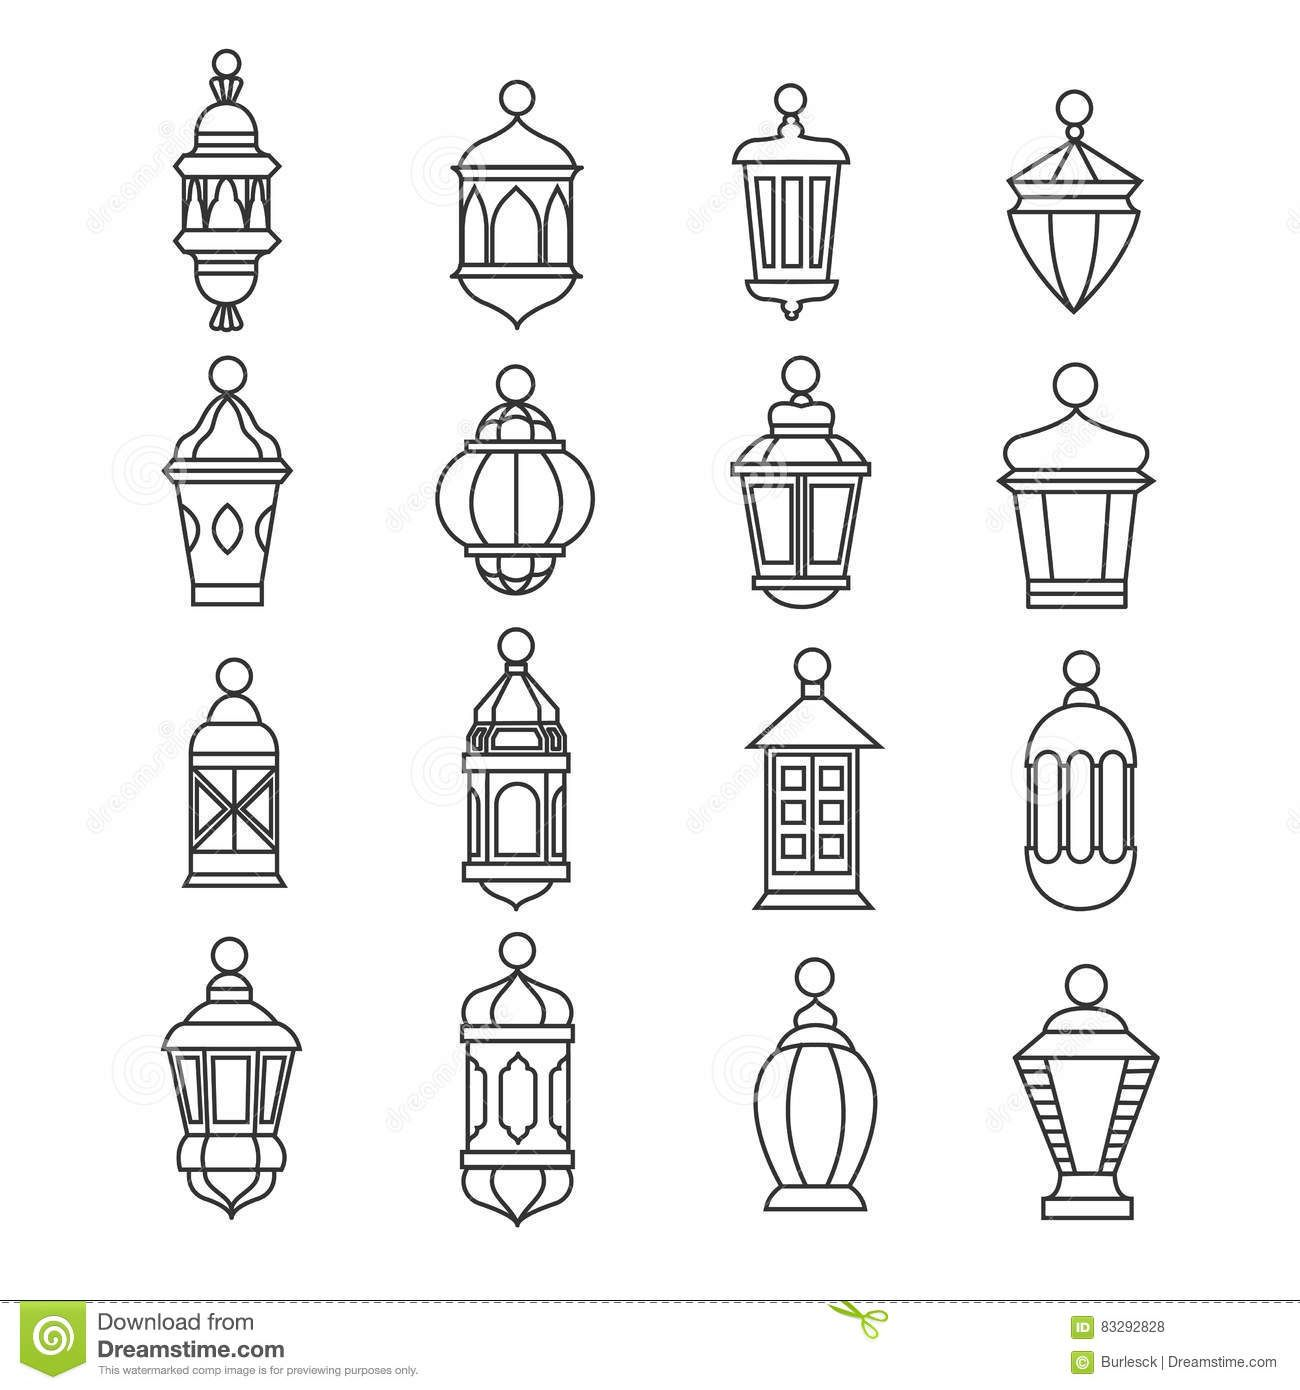 Illustration About Ramadan Vintage Lantern Linear Icons Vector Muslim Antique Lamp Symbols Old Oil Lantern Classic Ill Antique Lamps Ramadan Lantern Lanterns